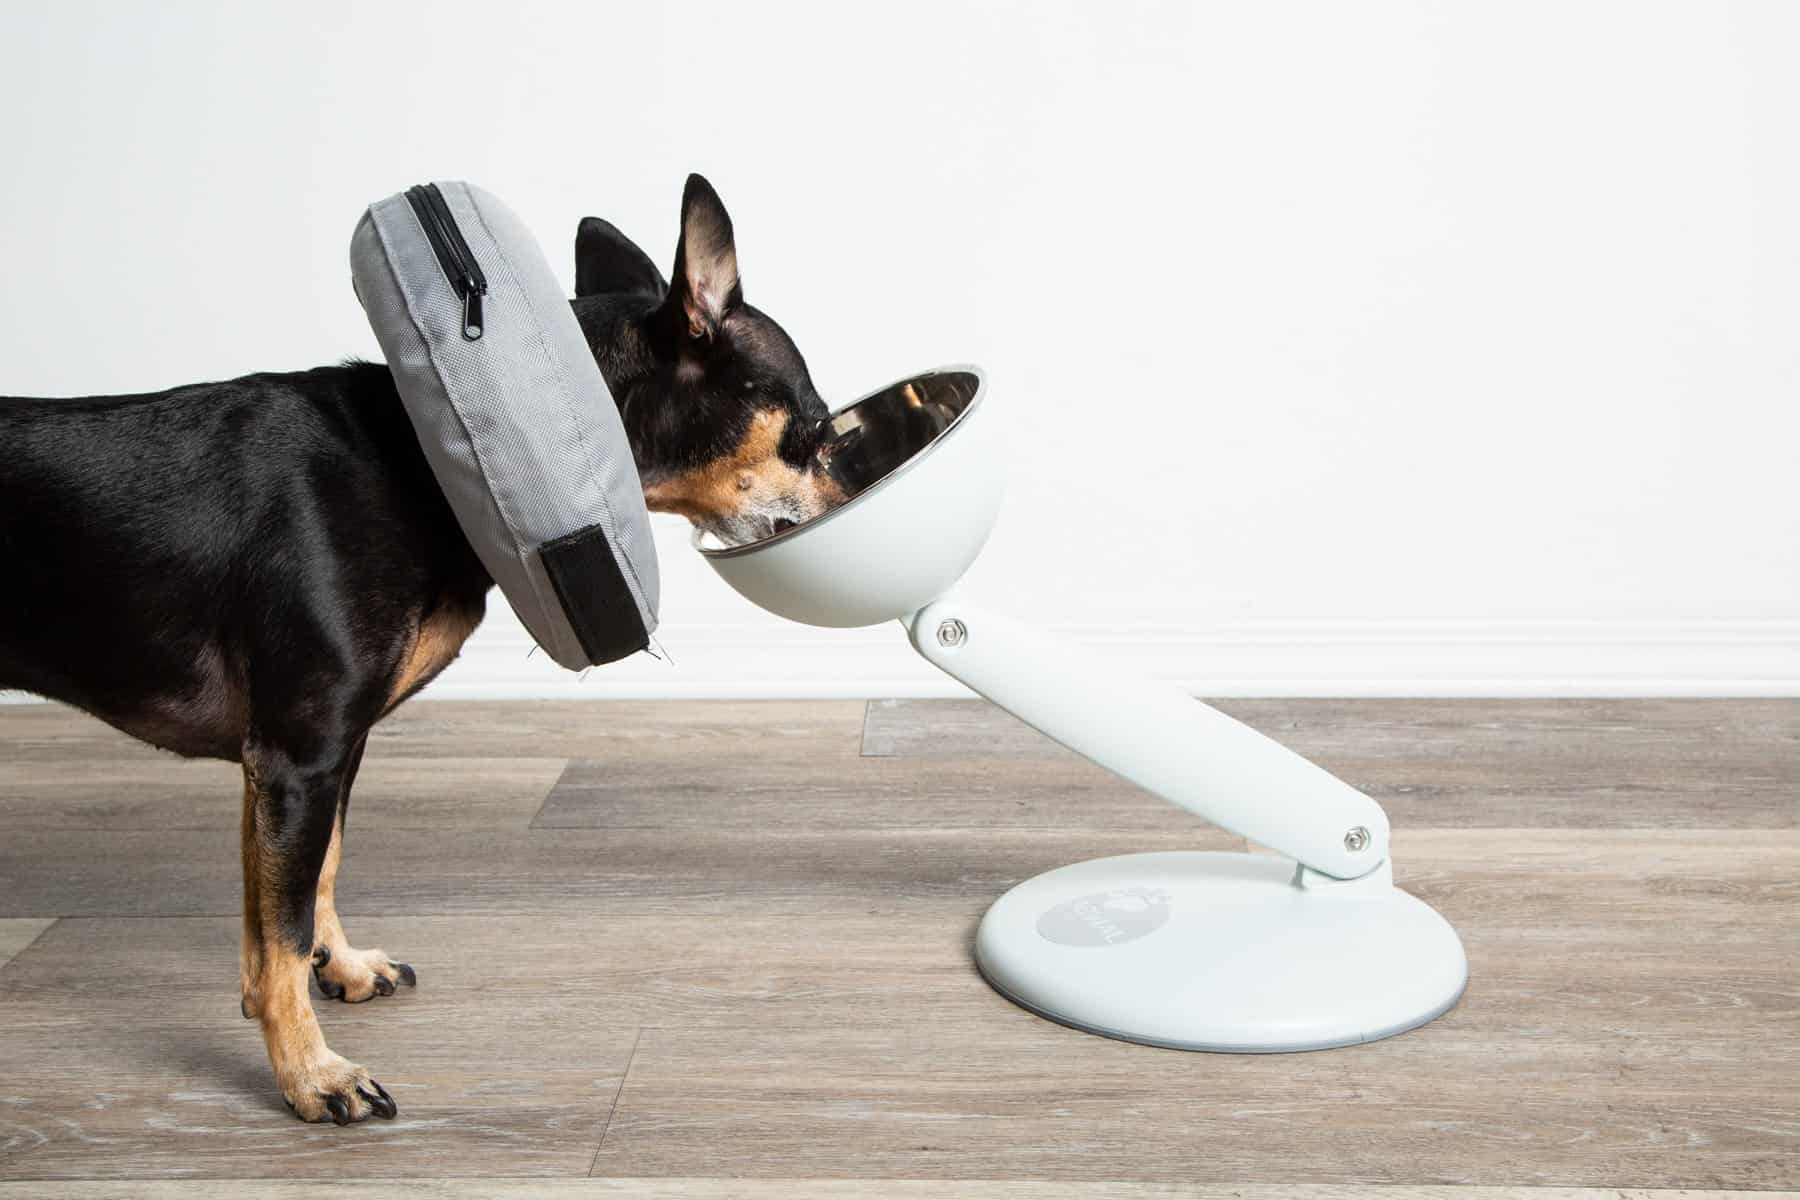 Dog wearing a cone eats from an elevated JoviBowl.